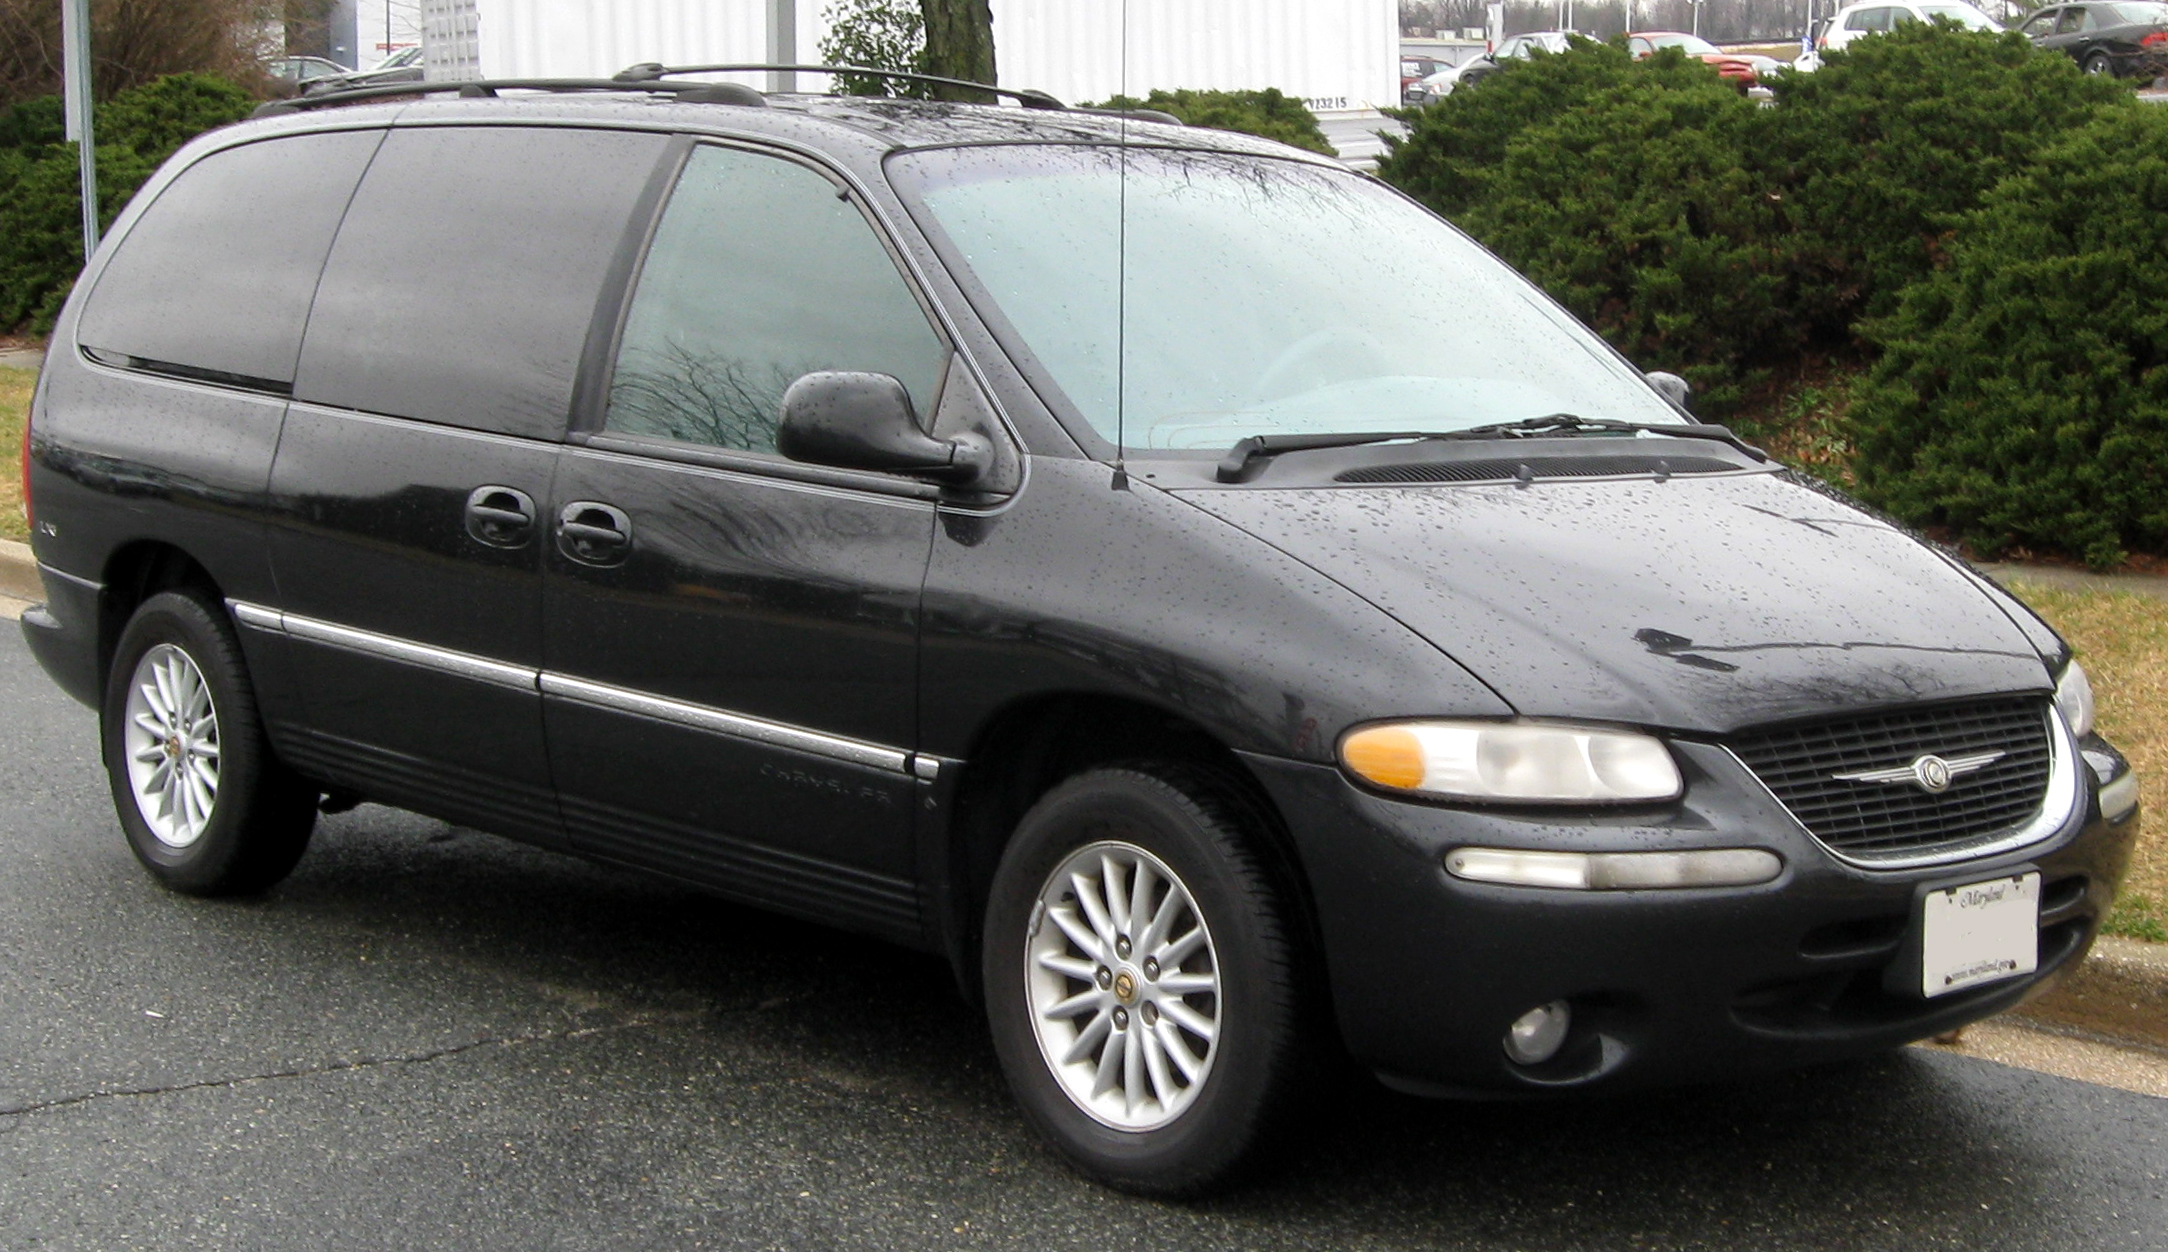 used 2008 chrysler town and country pricing edmunds autos post. Black Bedroom Furniture Sets. Home Design Ideas